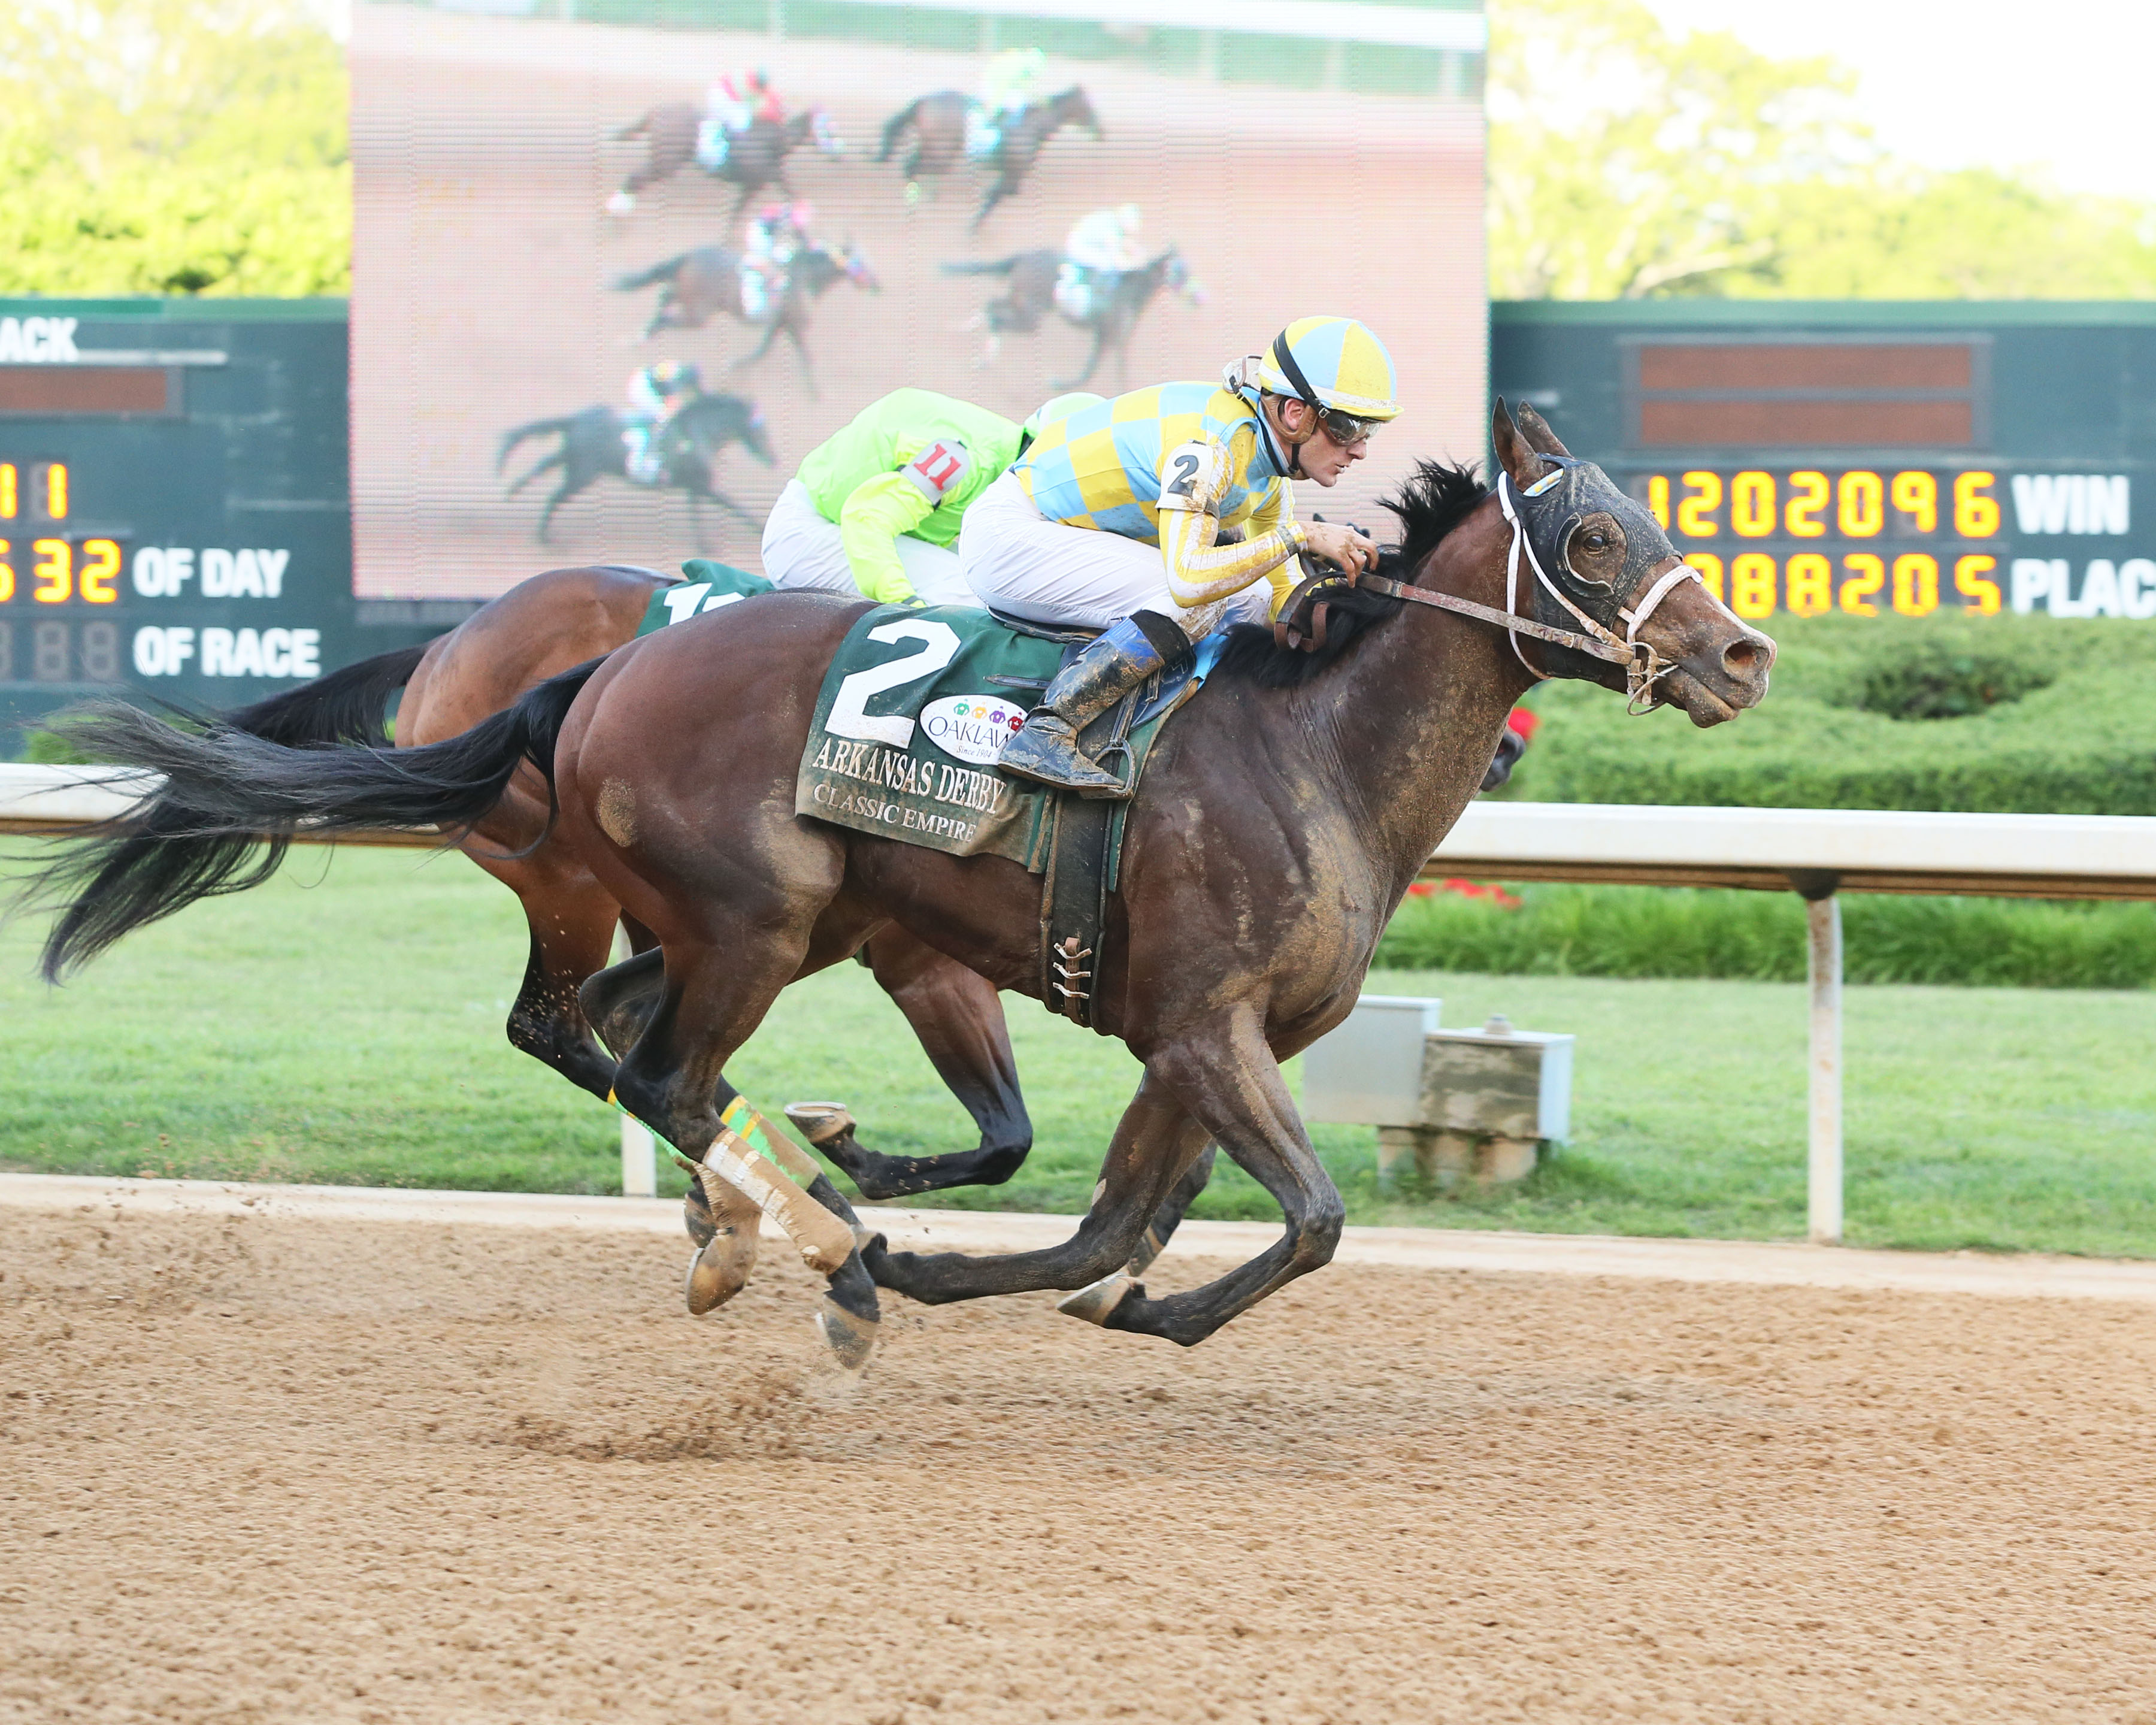 Arkansas Derby winner Classic Empire was named the morning line favorite for the Kentucky Derby. Photo Credit: Coady Photography